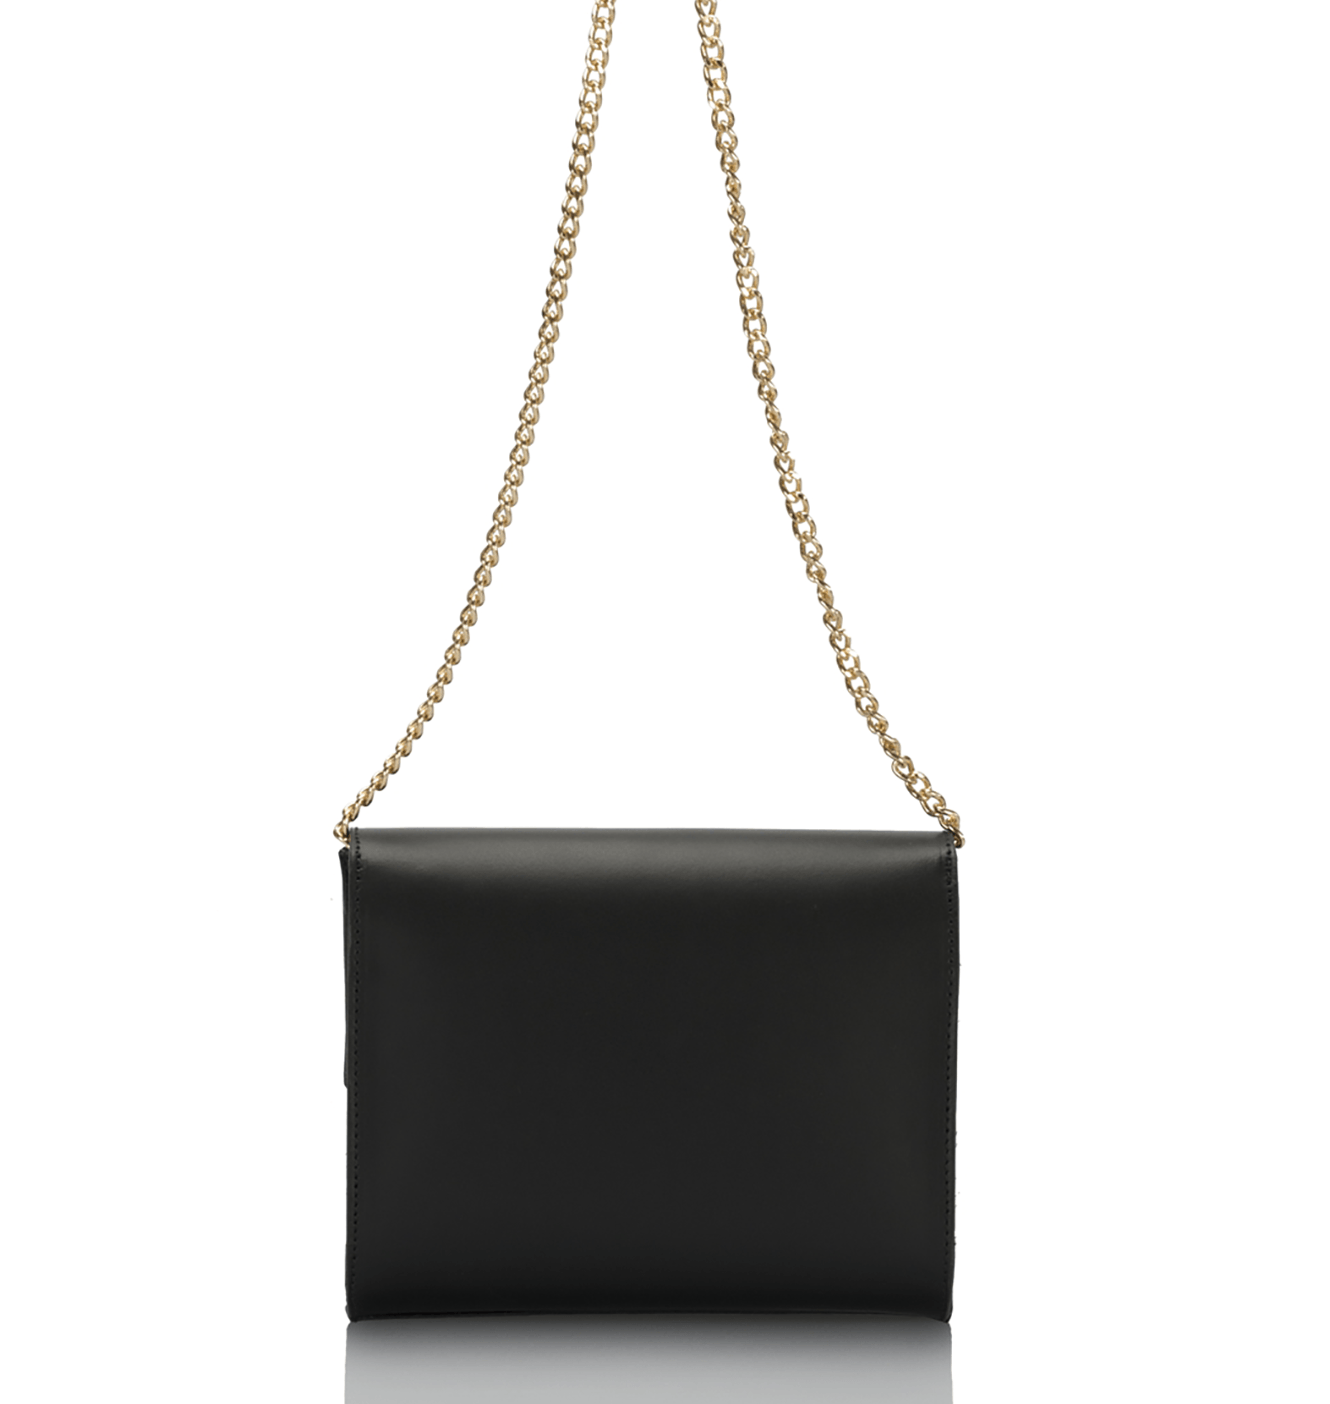 The Classic Clutch - Onyx Black